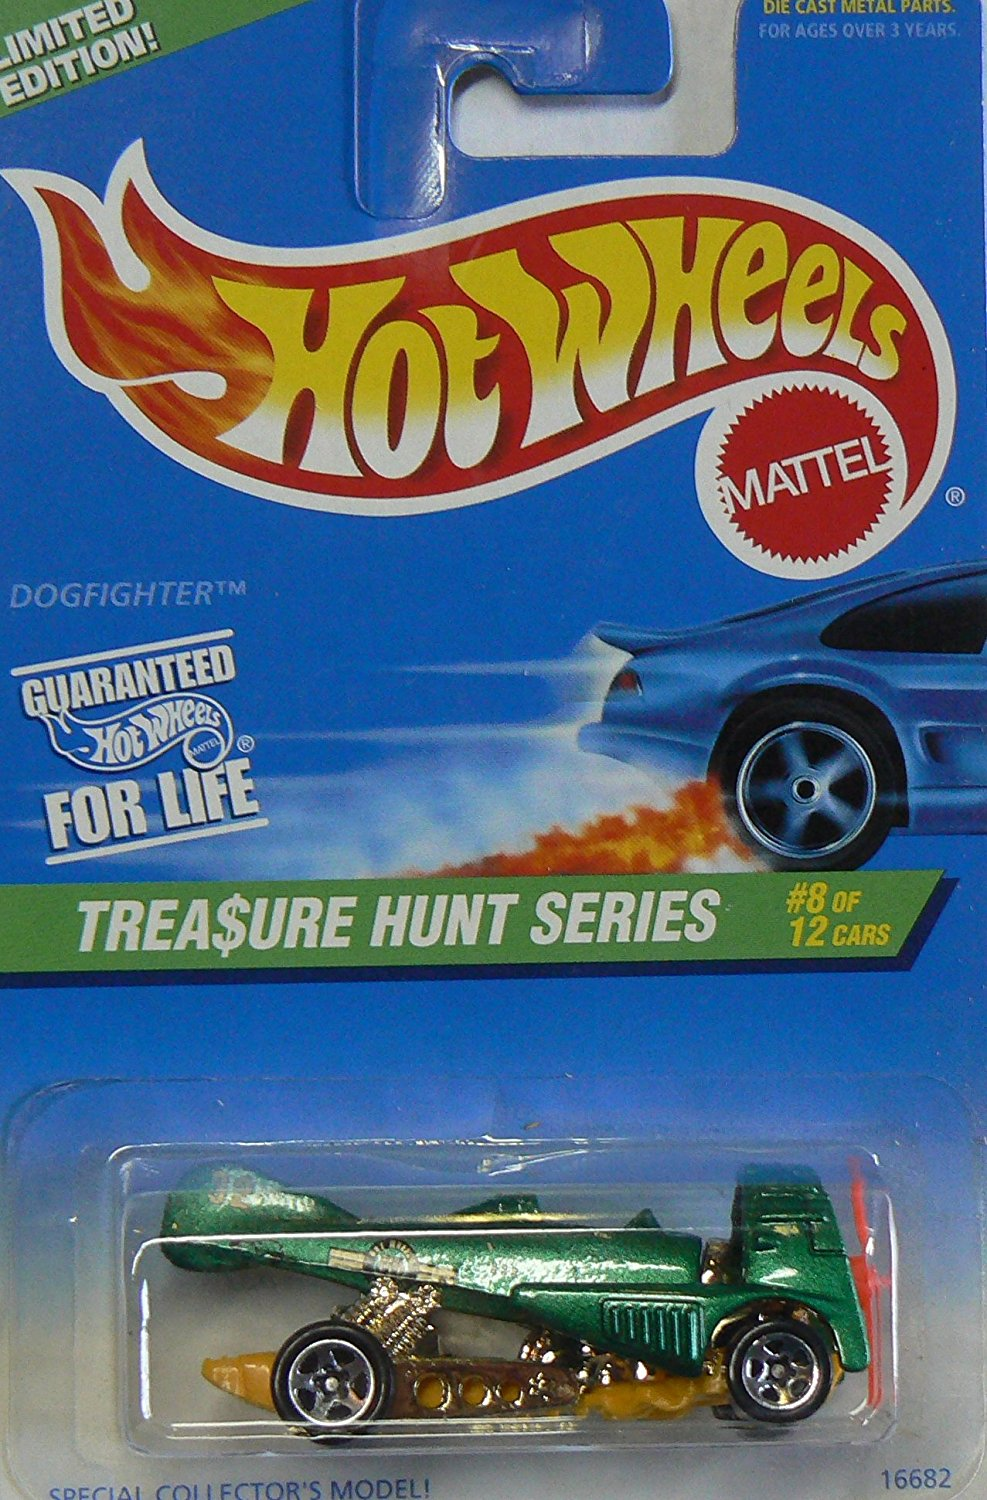 Hot Wheels Treasure Hunt Series Dogfighter #8 of 12, #585